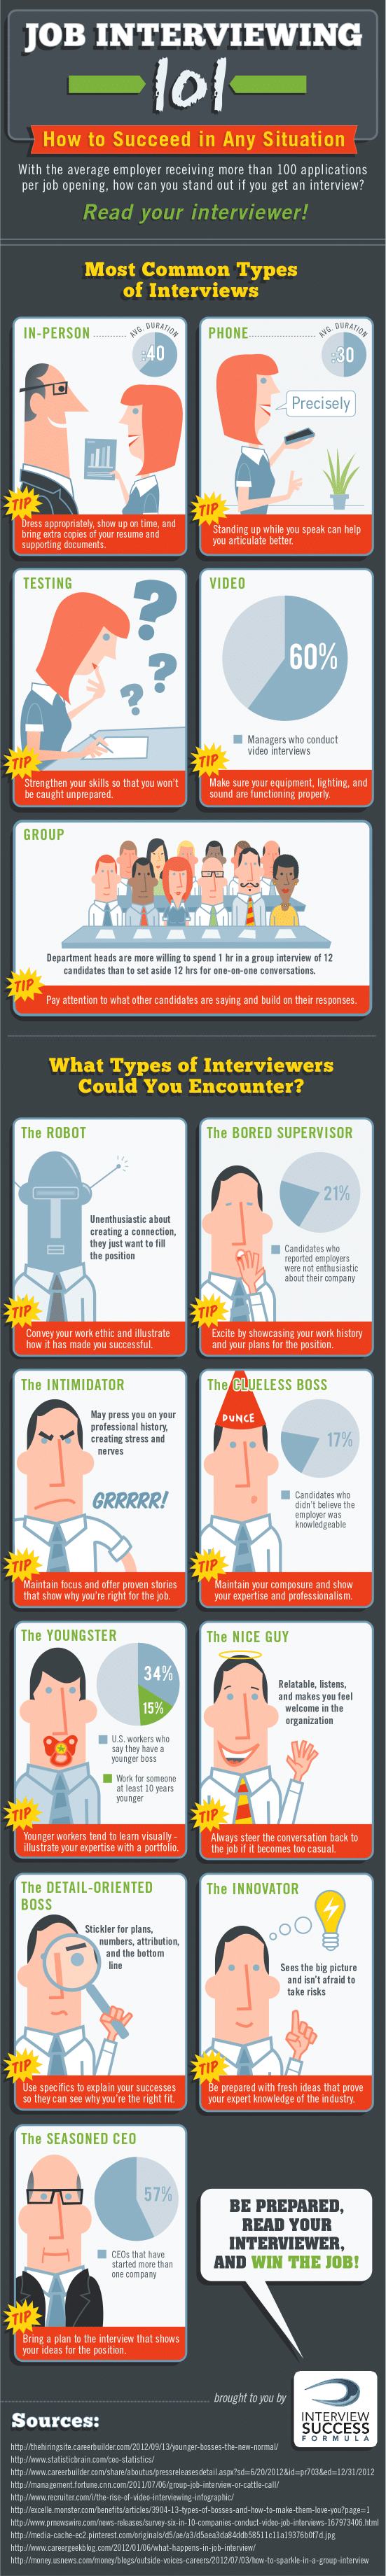 14 Job Interview Tips That Will Get You The Job [Infographic]